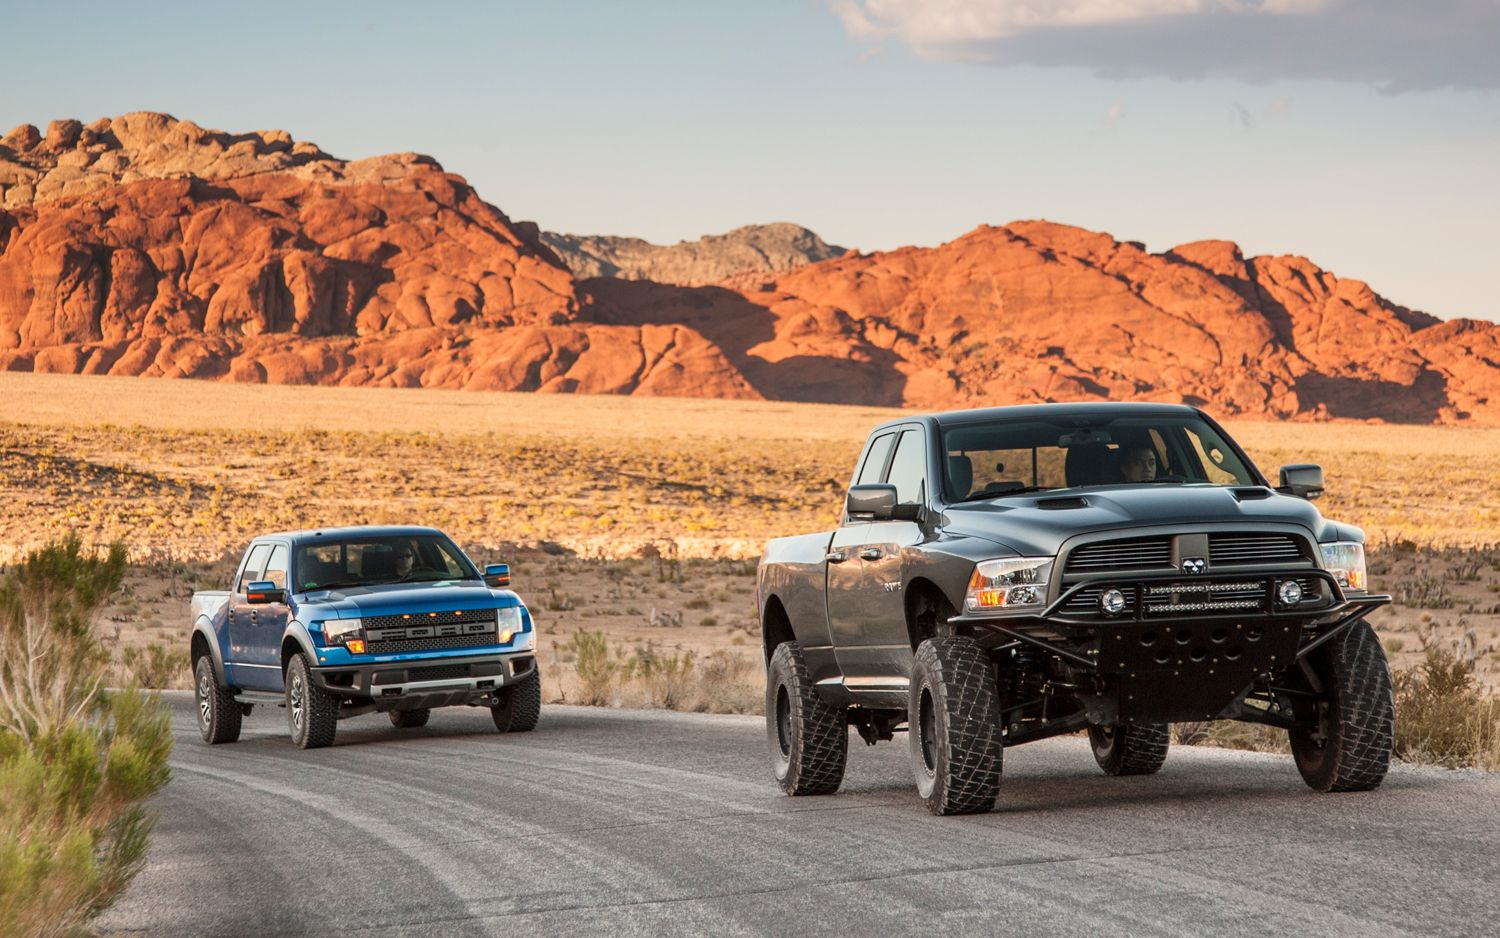 These trucks can play in the rough but only one serves daily duty too read all about the 2012 ford raptor vs 2012 ram runner comparison from the truck